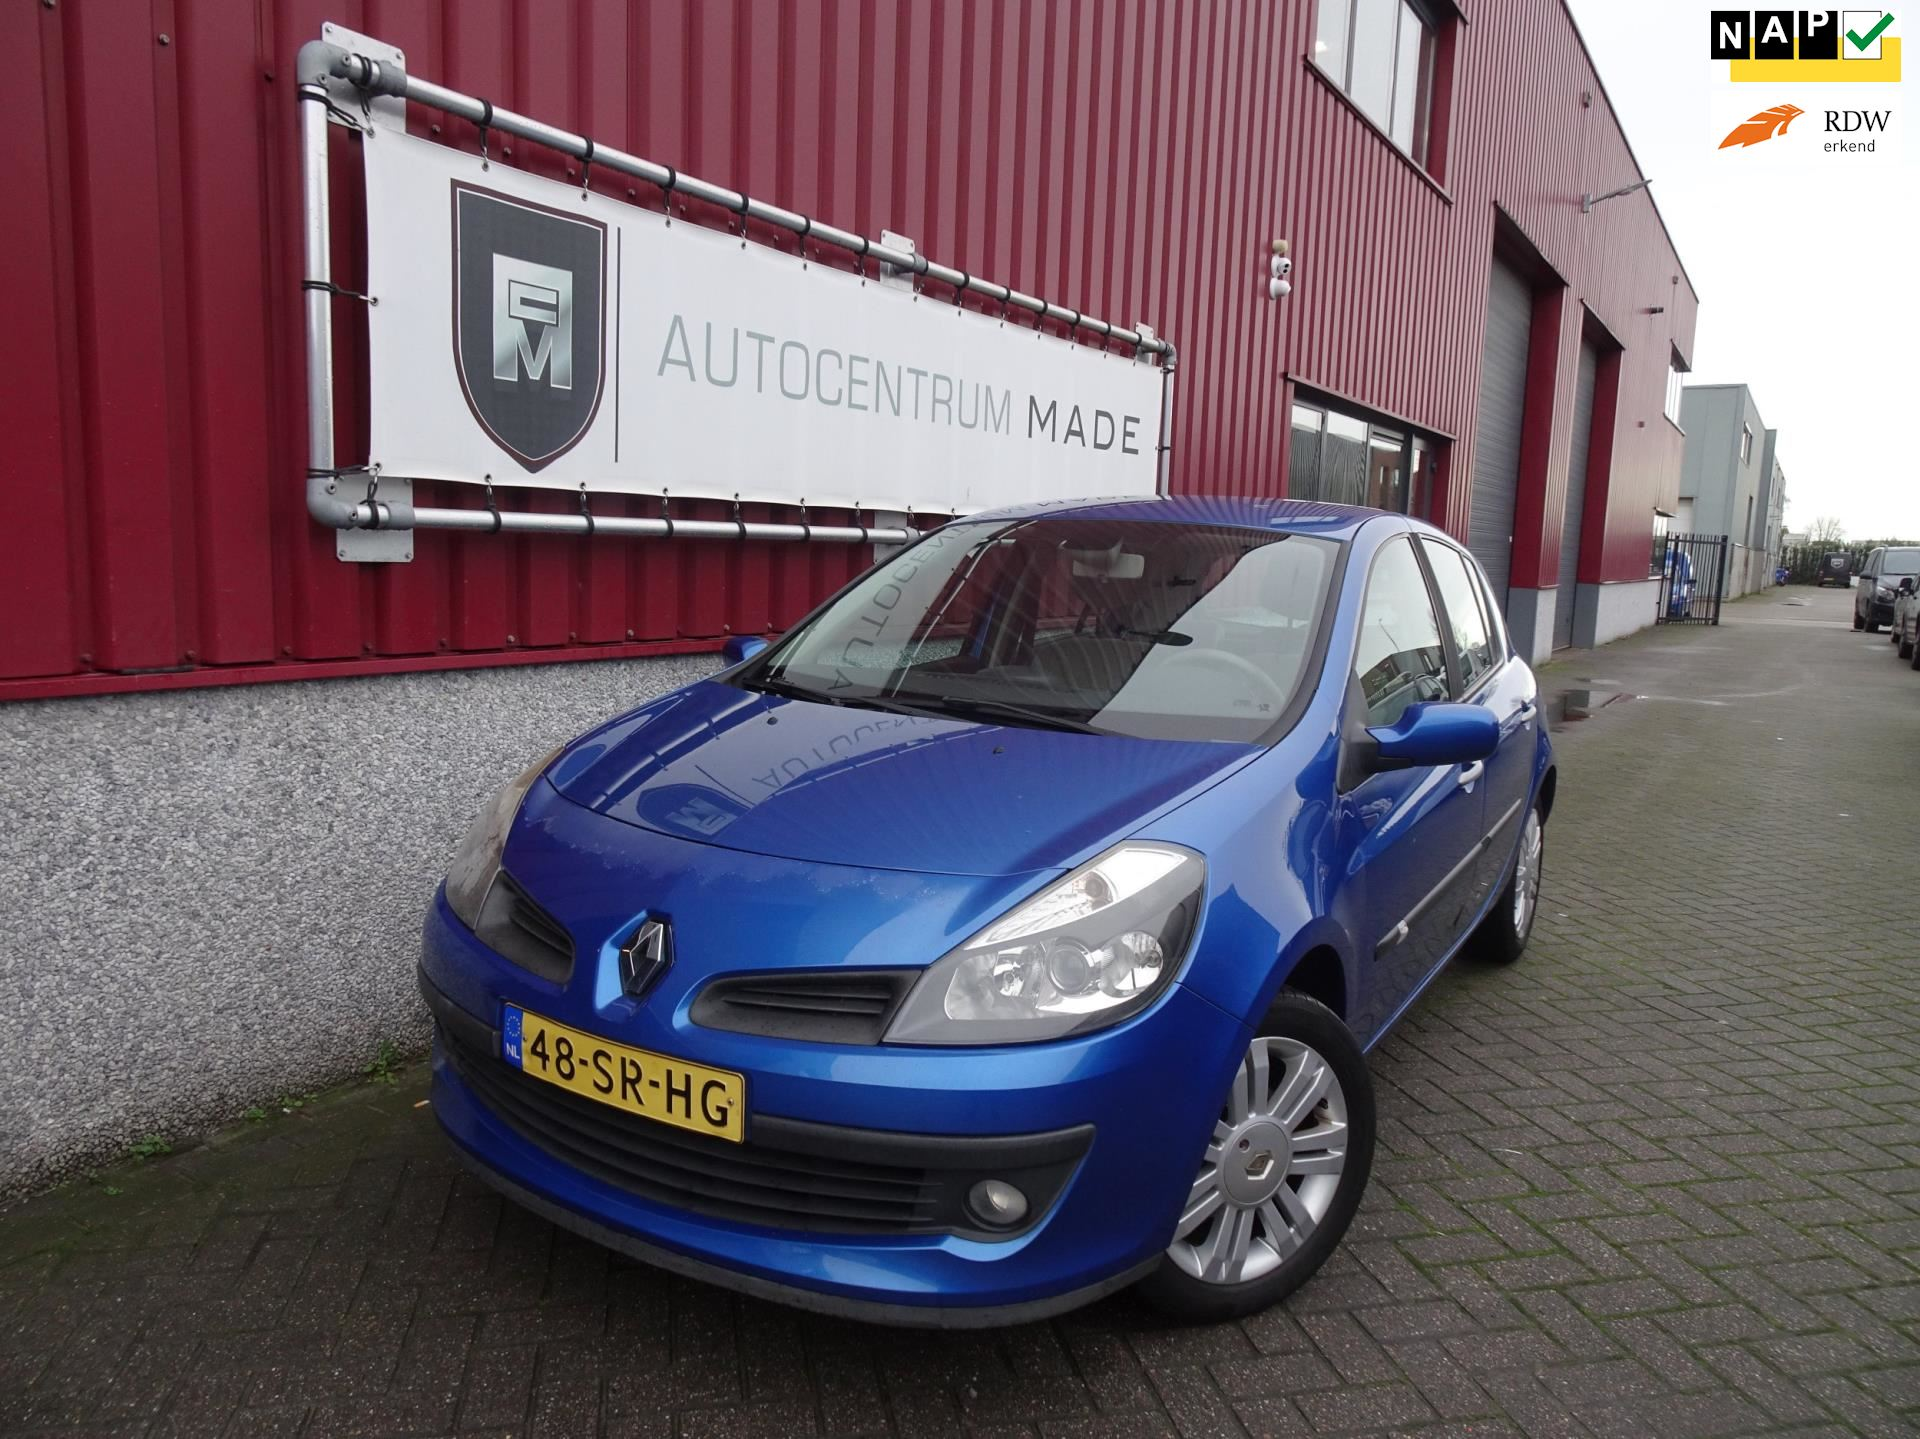 Renault Clio occasion - Auto Centrum Made